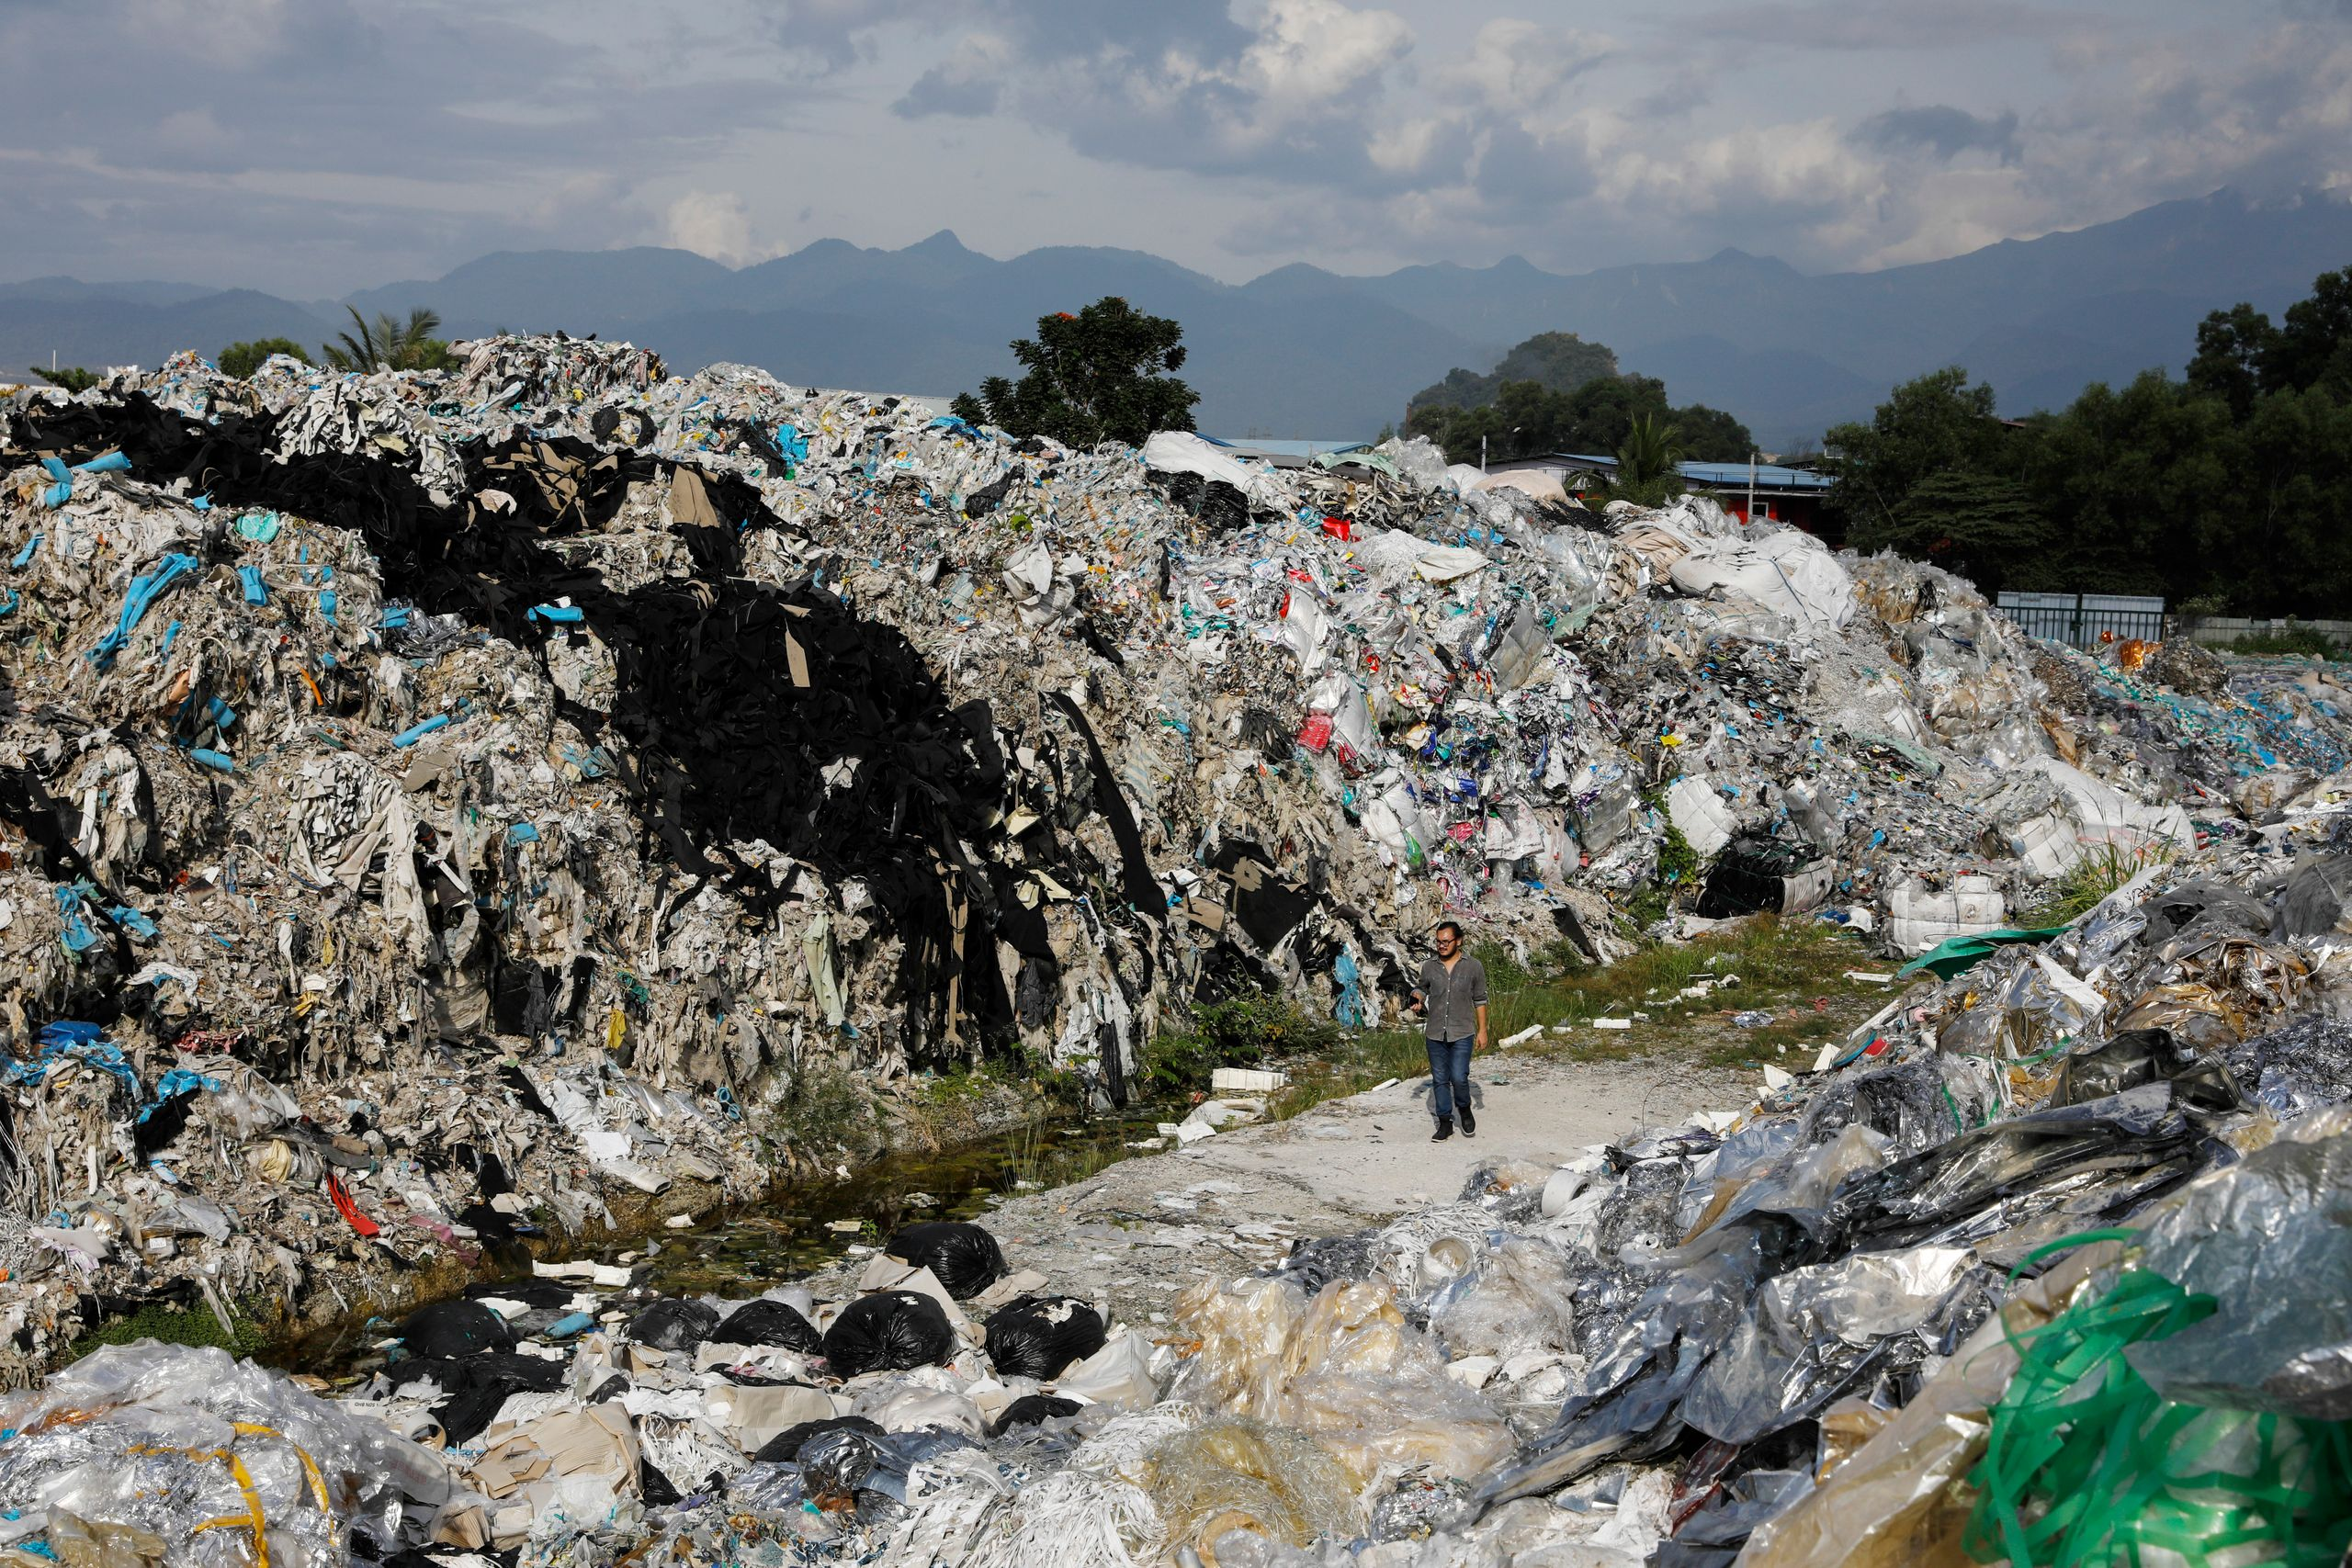 A Greenpeace activist at a dumpsite in Ipoh, Jan. 30. Unlicensed recyclers are illegally burning or dumping waste plastics in